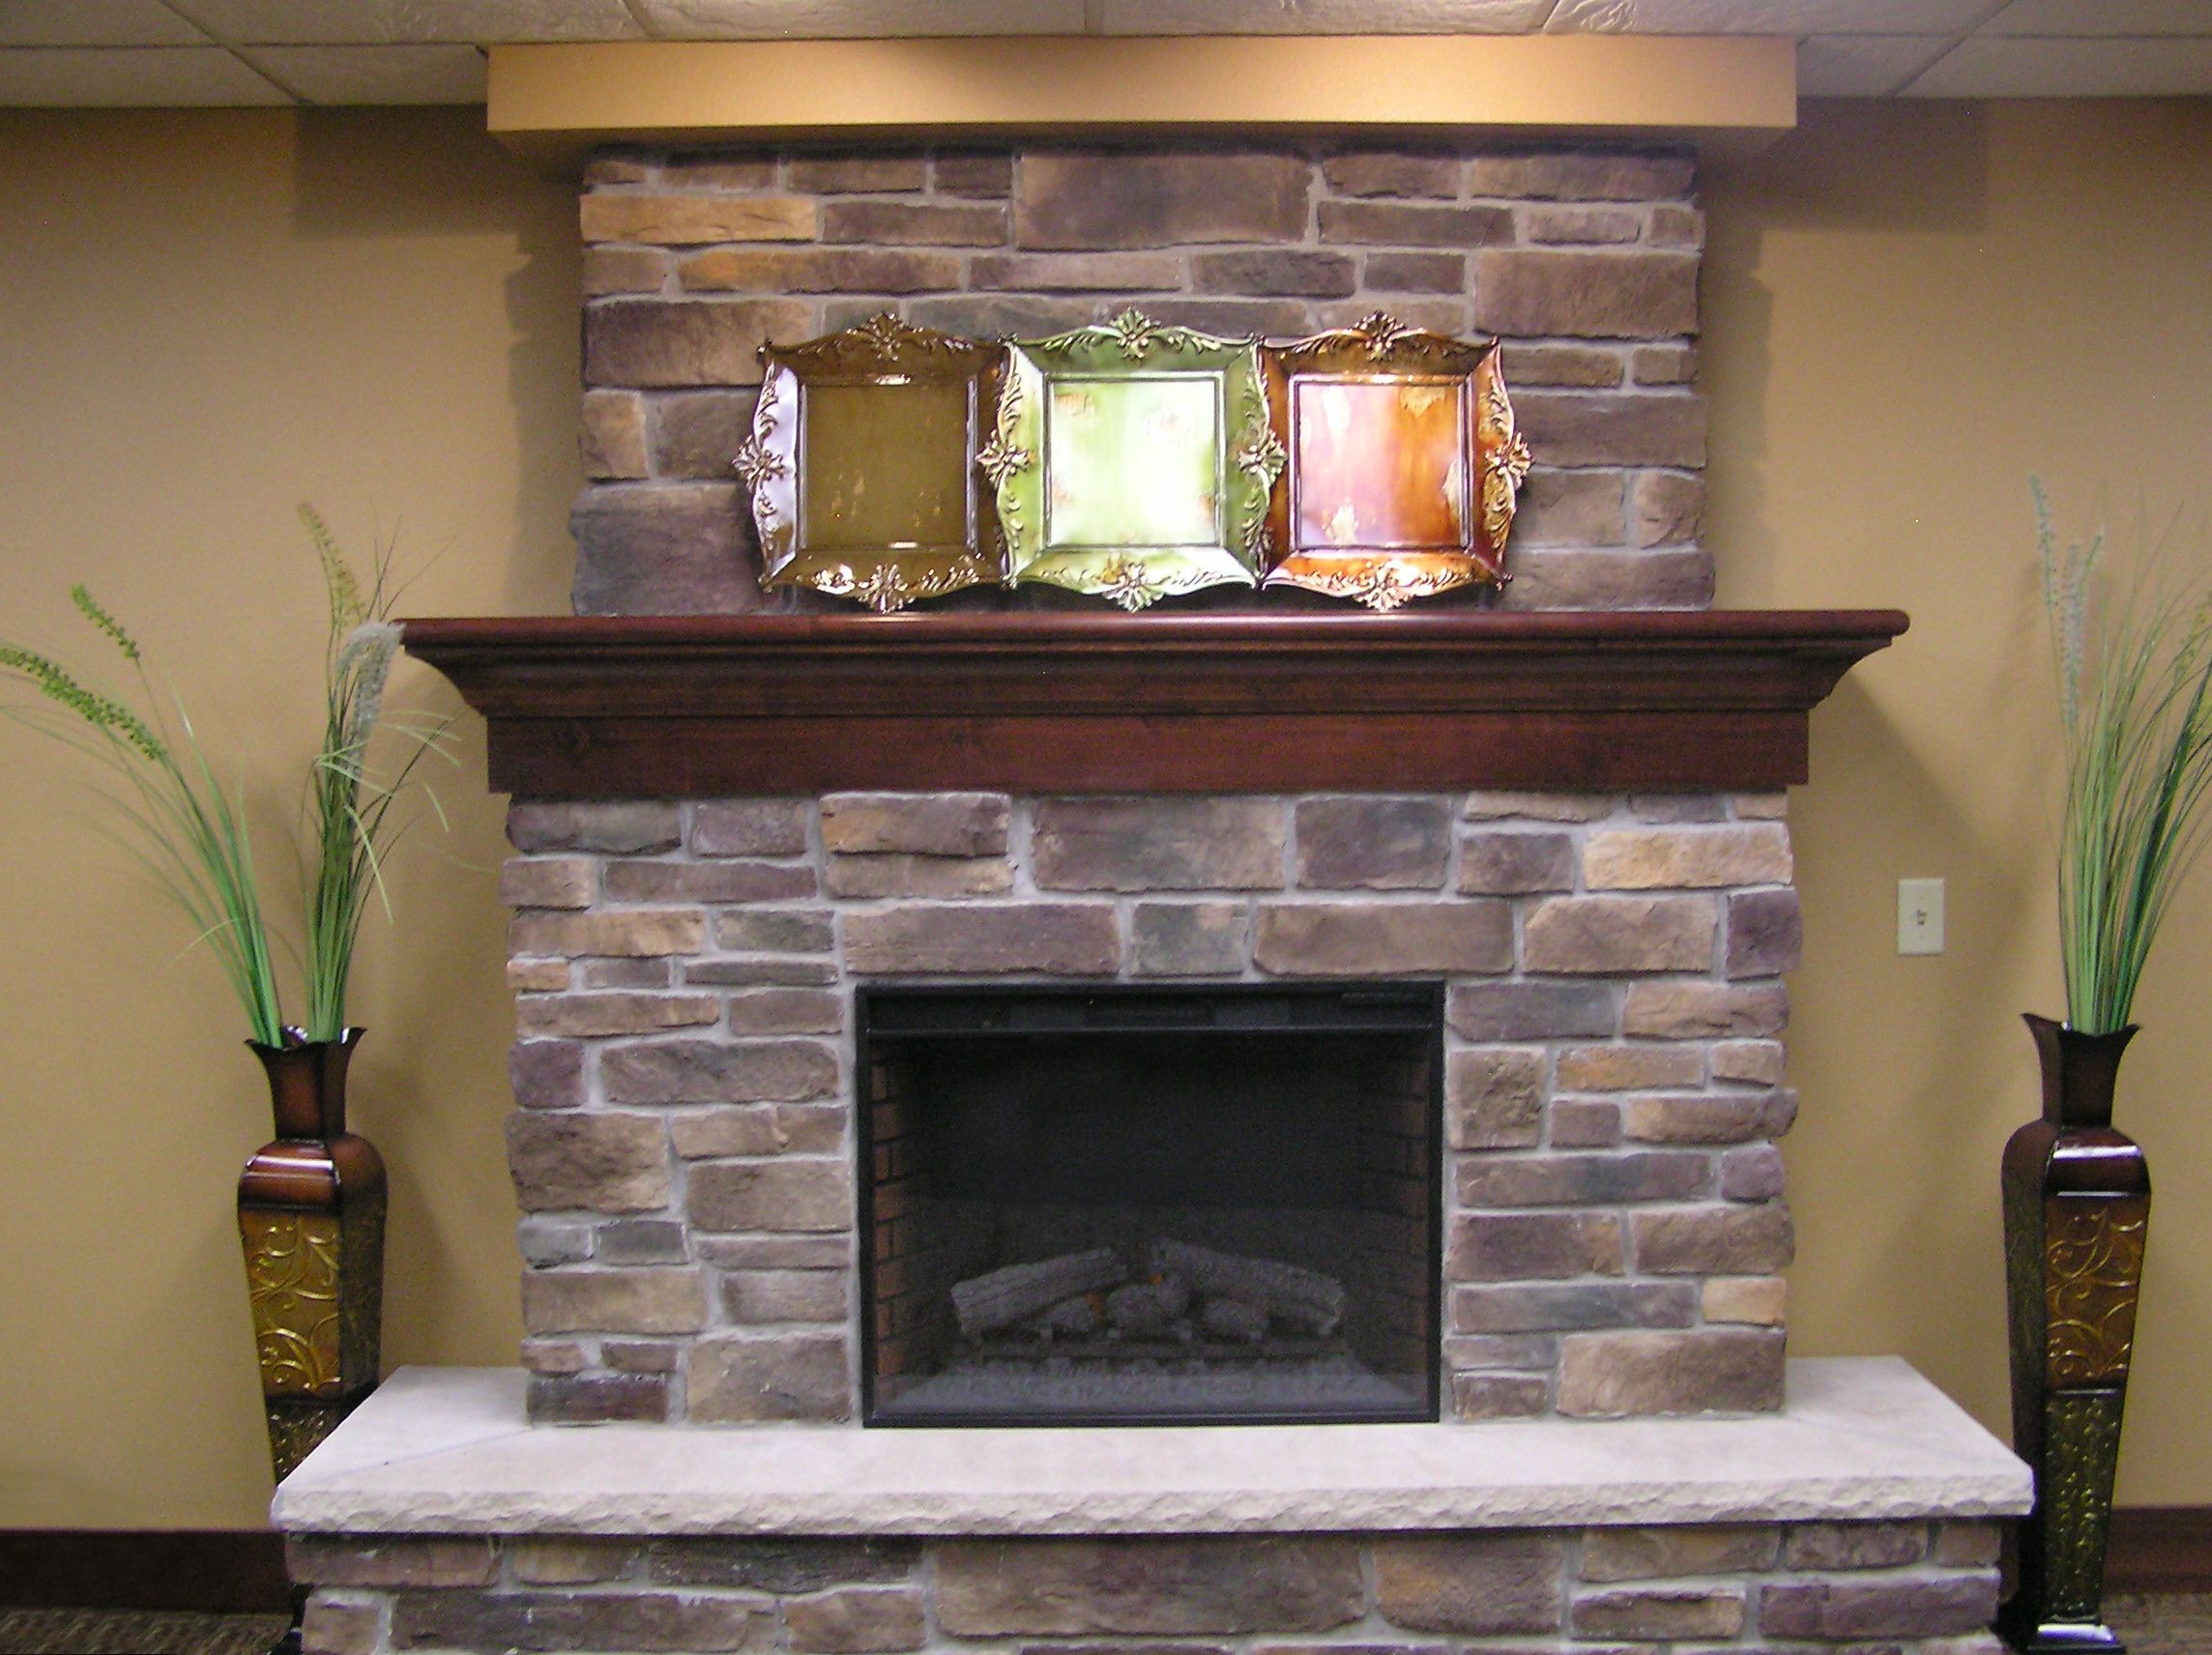 Mantel Kits For Brick Fireplace Fireplace Mantels Mantles Thumbs Thumbs Fireplace